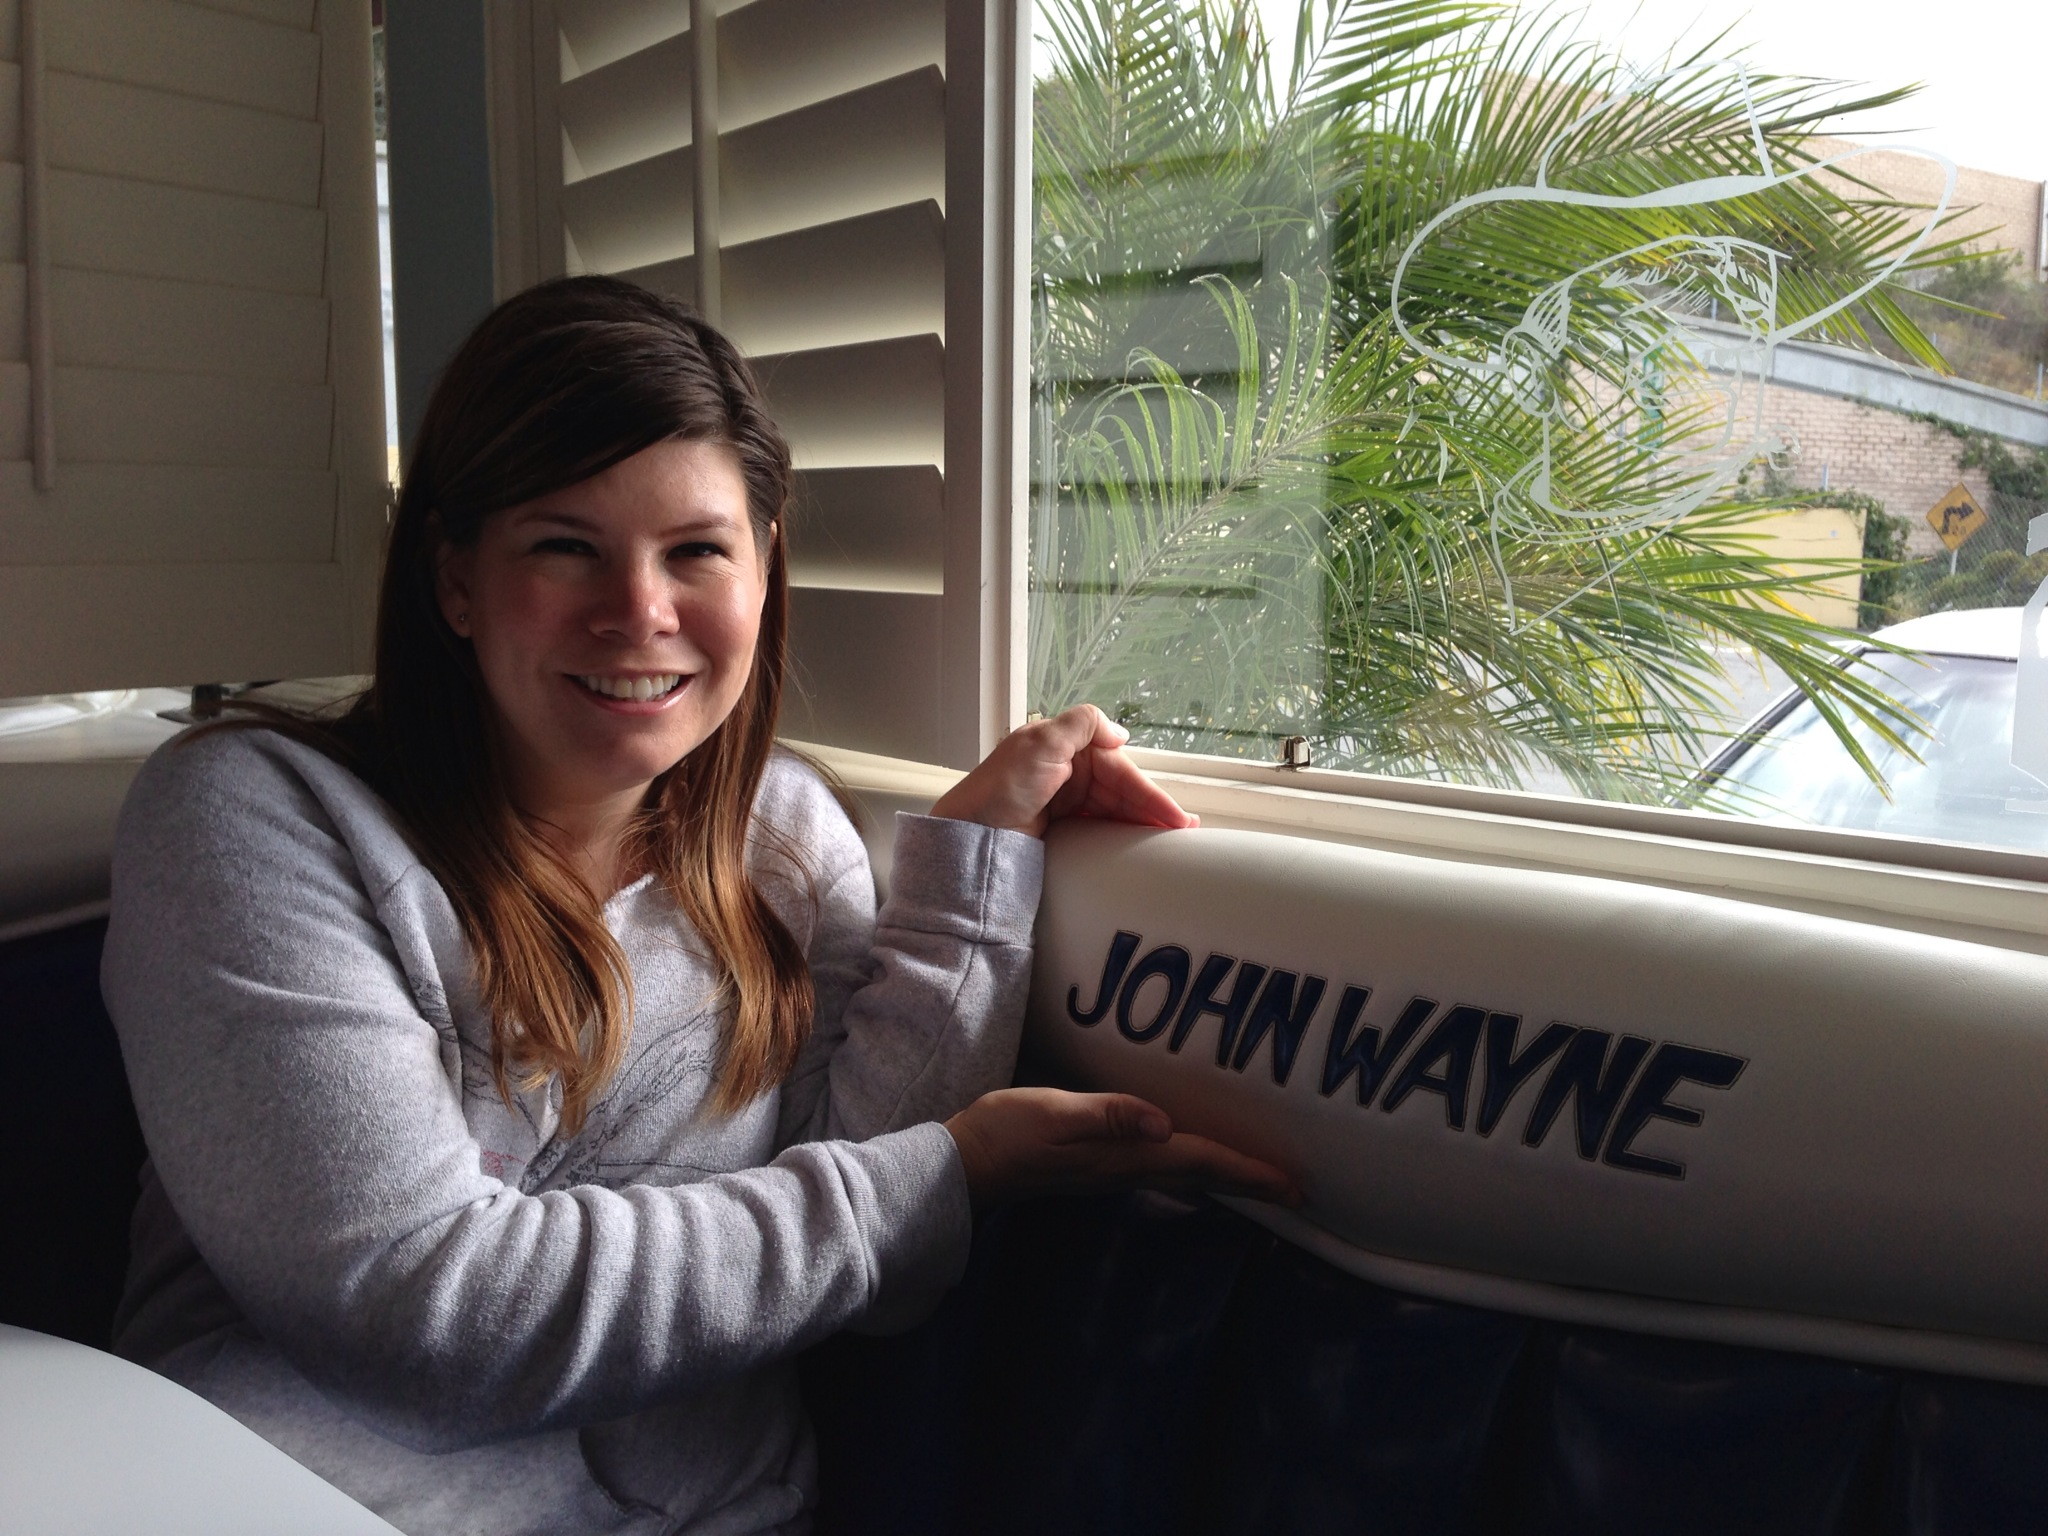 We were seated in the John Wayne Booth!